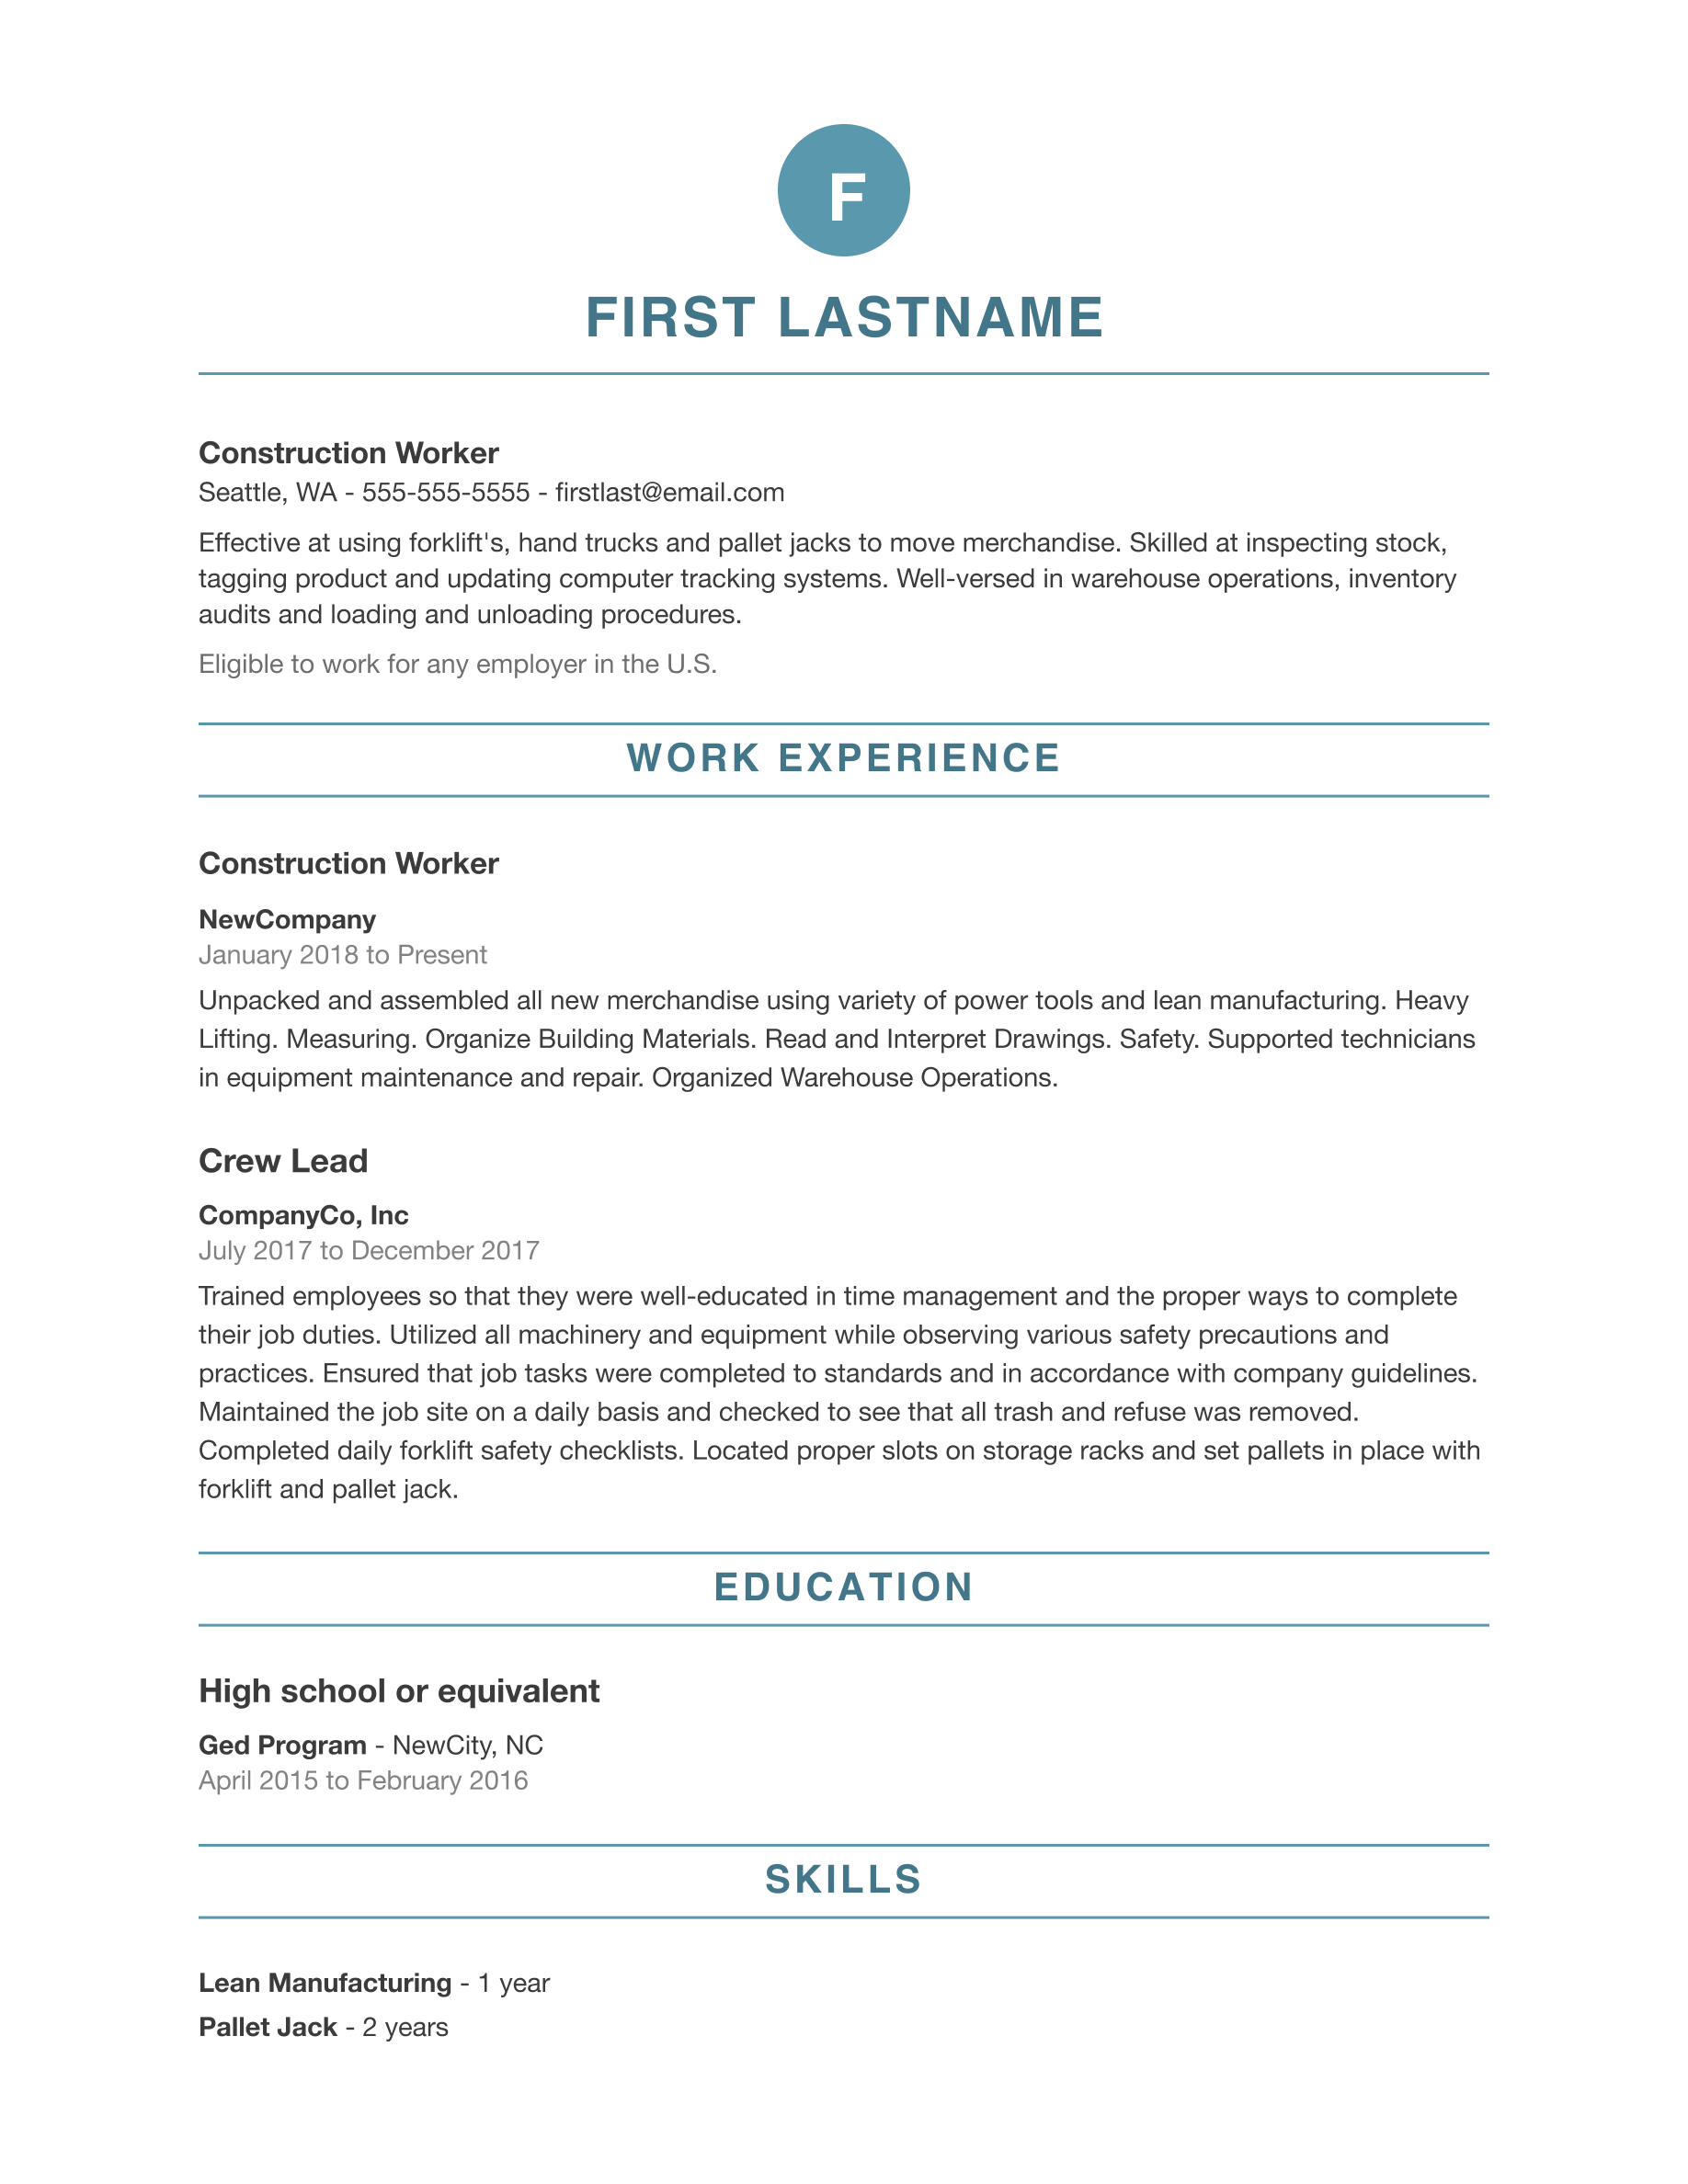 can help you build your resume and look for